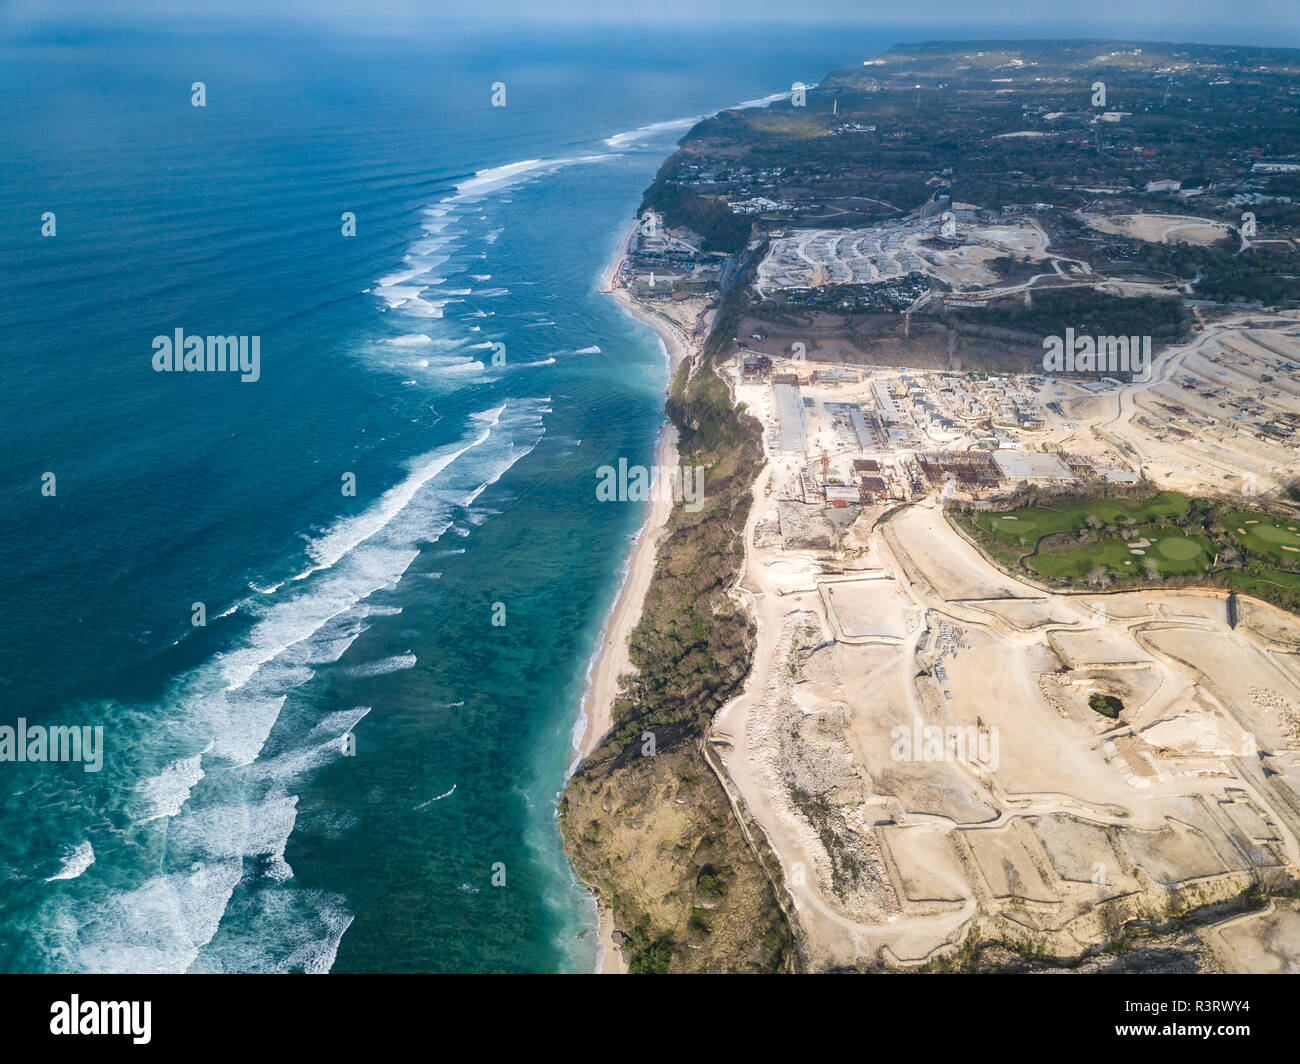 Indonesia, Bali, Aerial view of Payung beach - Stock Image